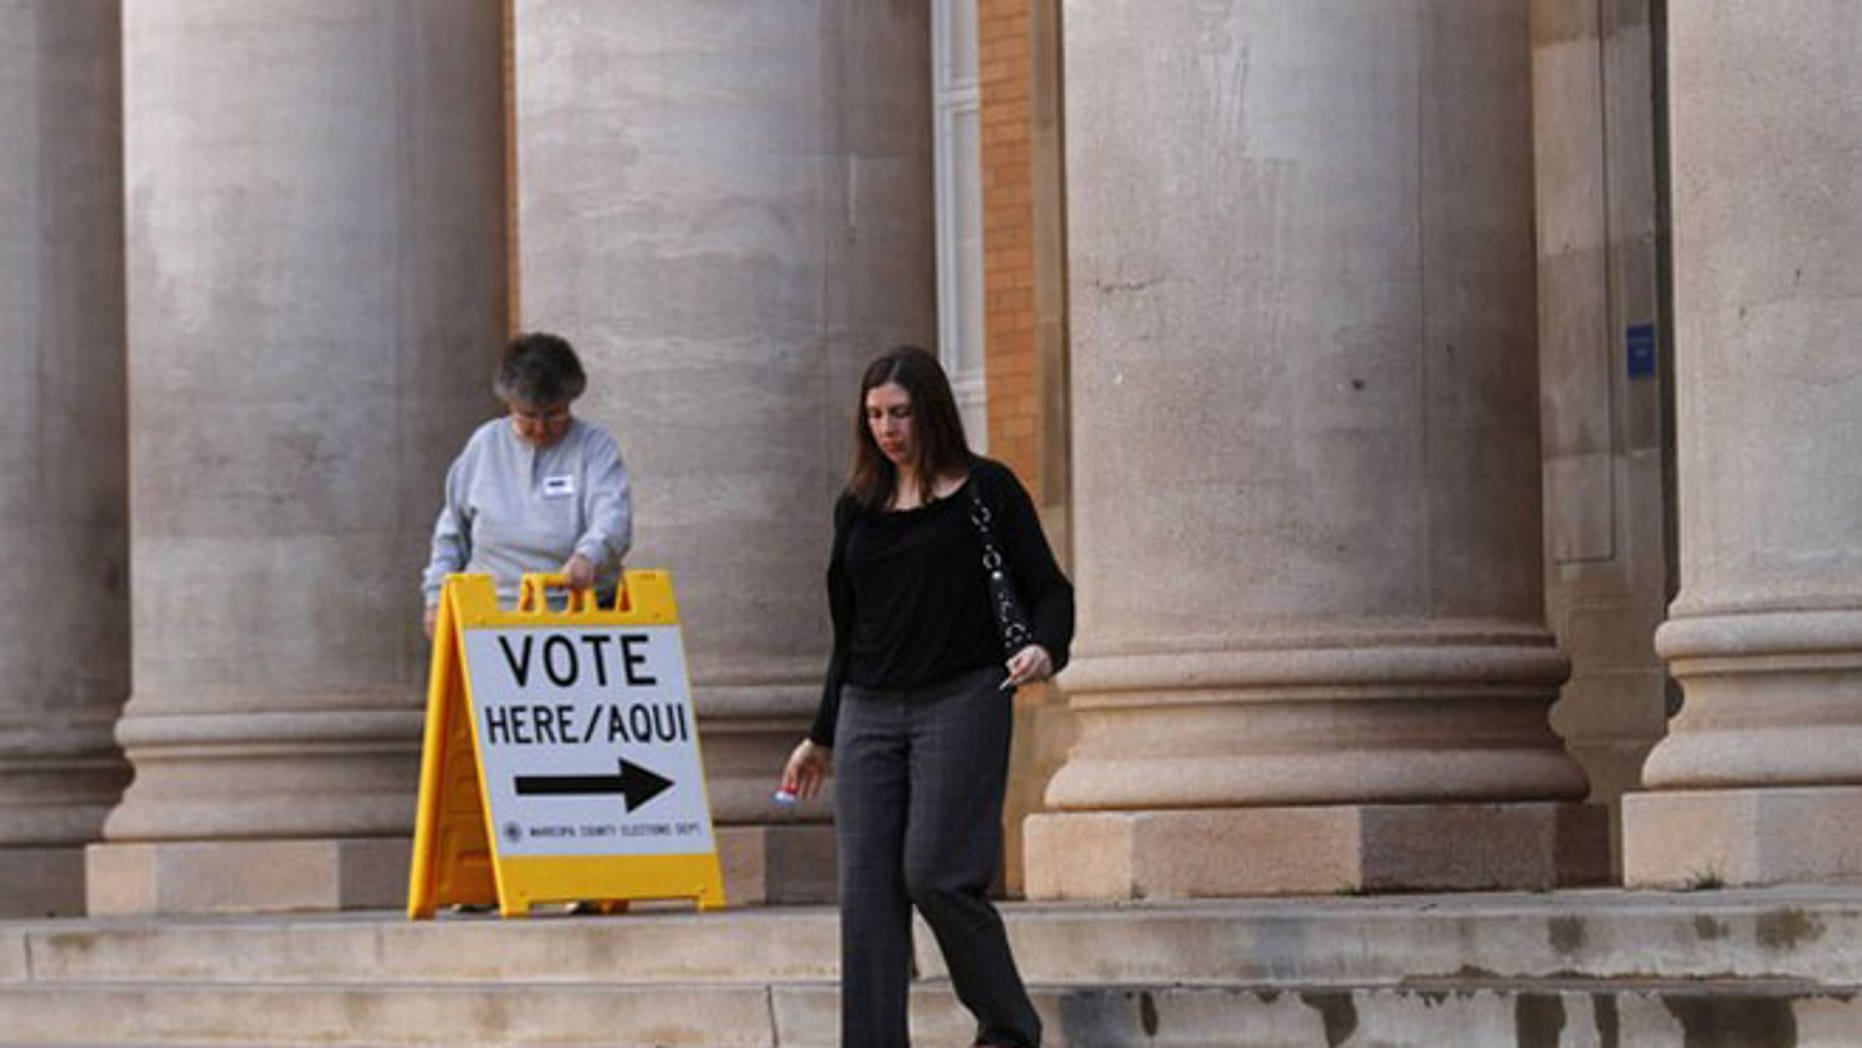 February 28, 2012: Sarah Moran leaves a polling station after voting as election-day volunteer Vicki Groff moves a vote sign at Kenilworth School in Phoenix, Arizona.